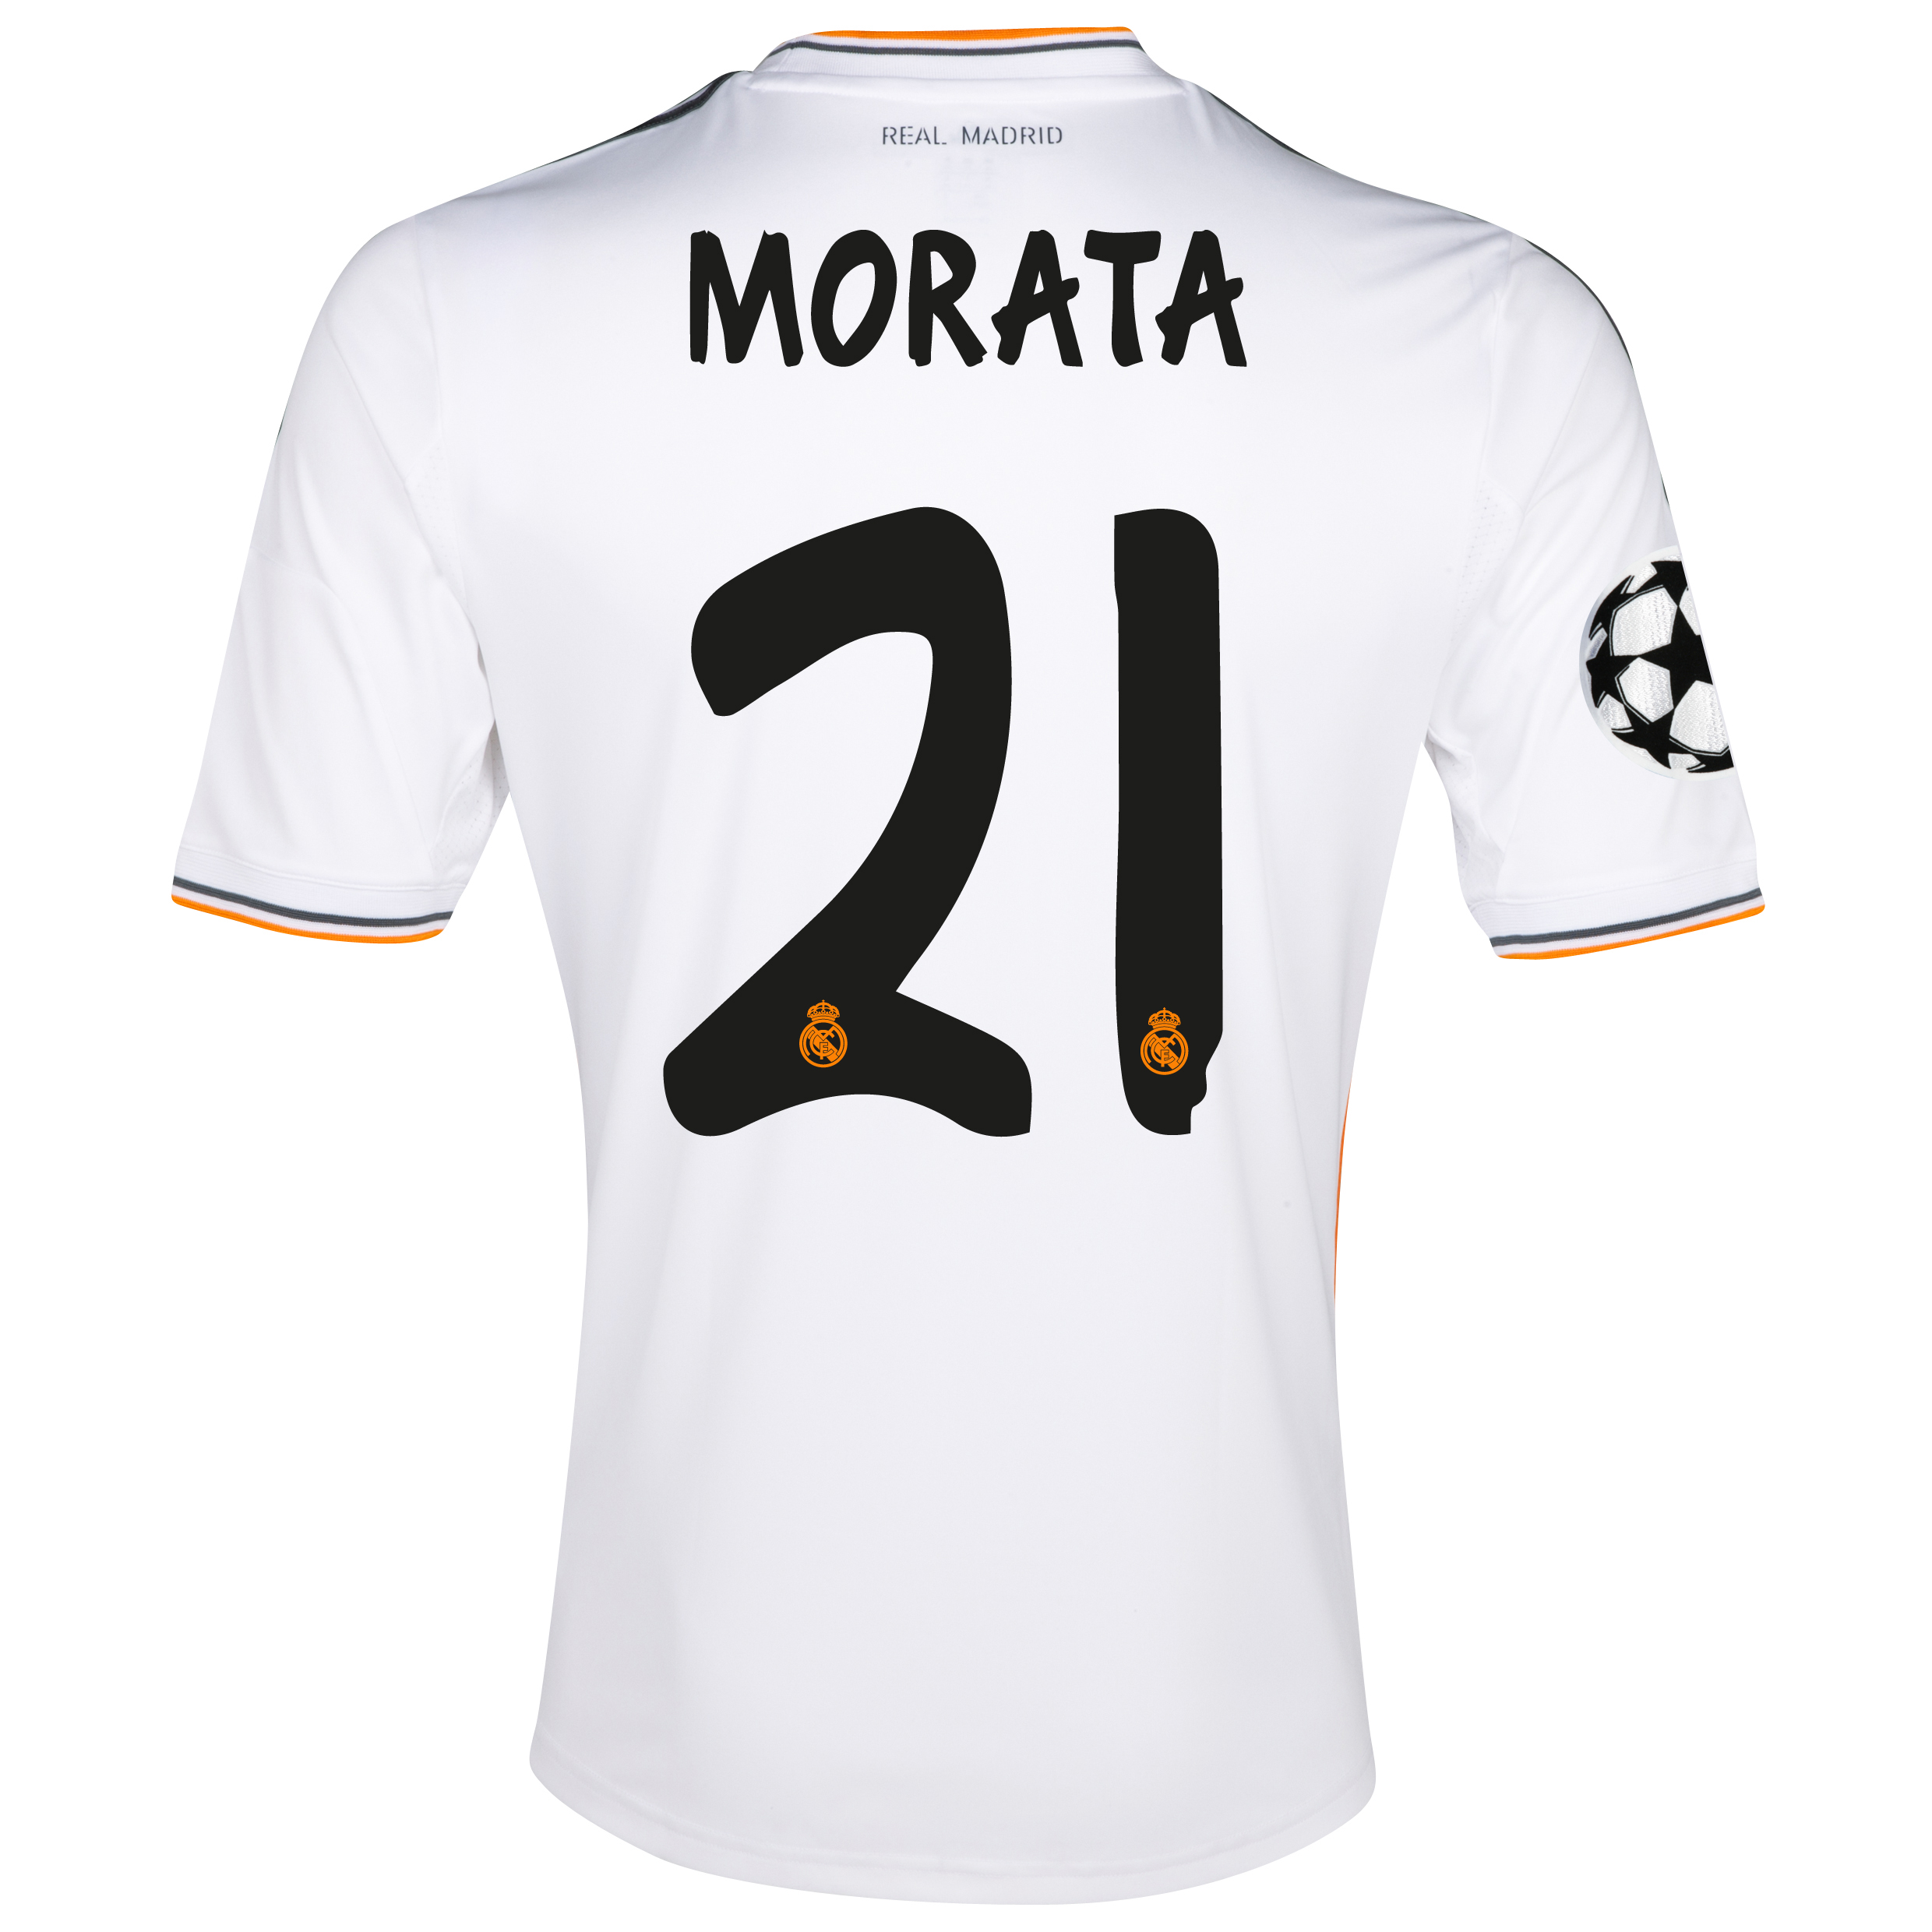 Real Madrid UEFA Champions League Home Shirt 2013/14 - kids with Morata 21 printing